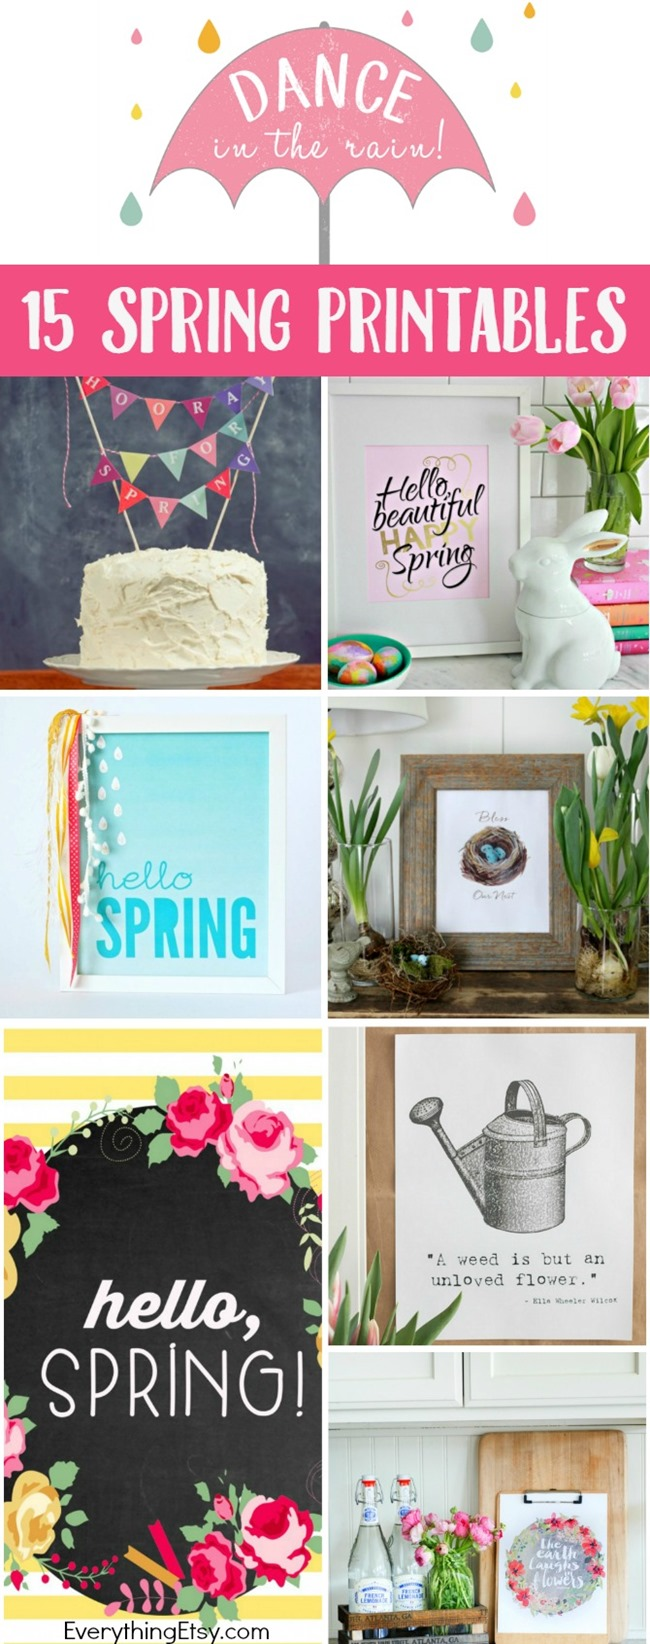 6 Images of DIY Home Decor Free Printables